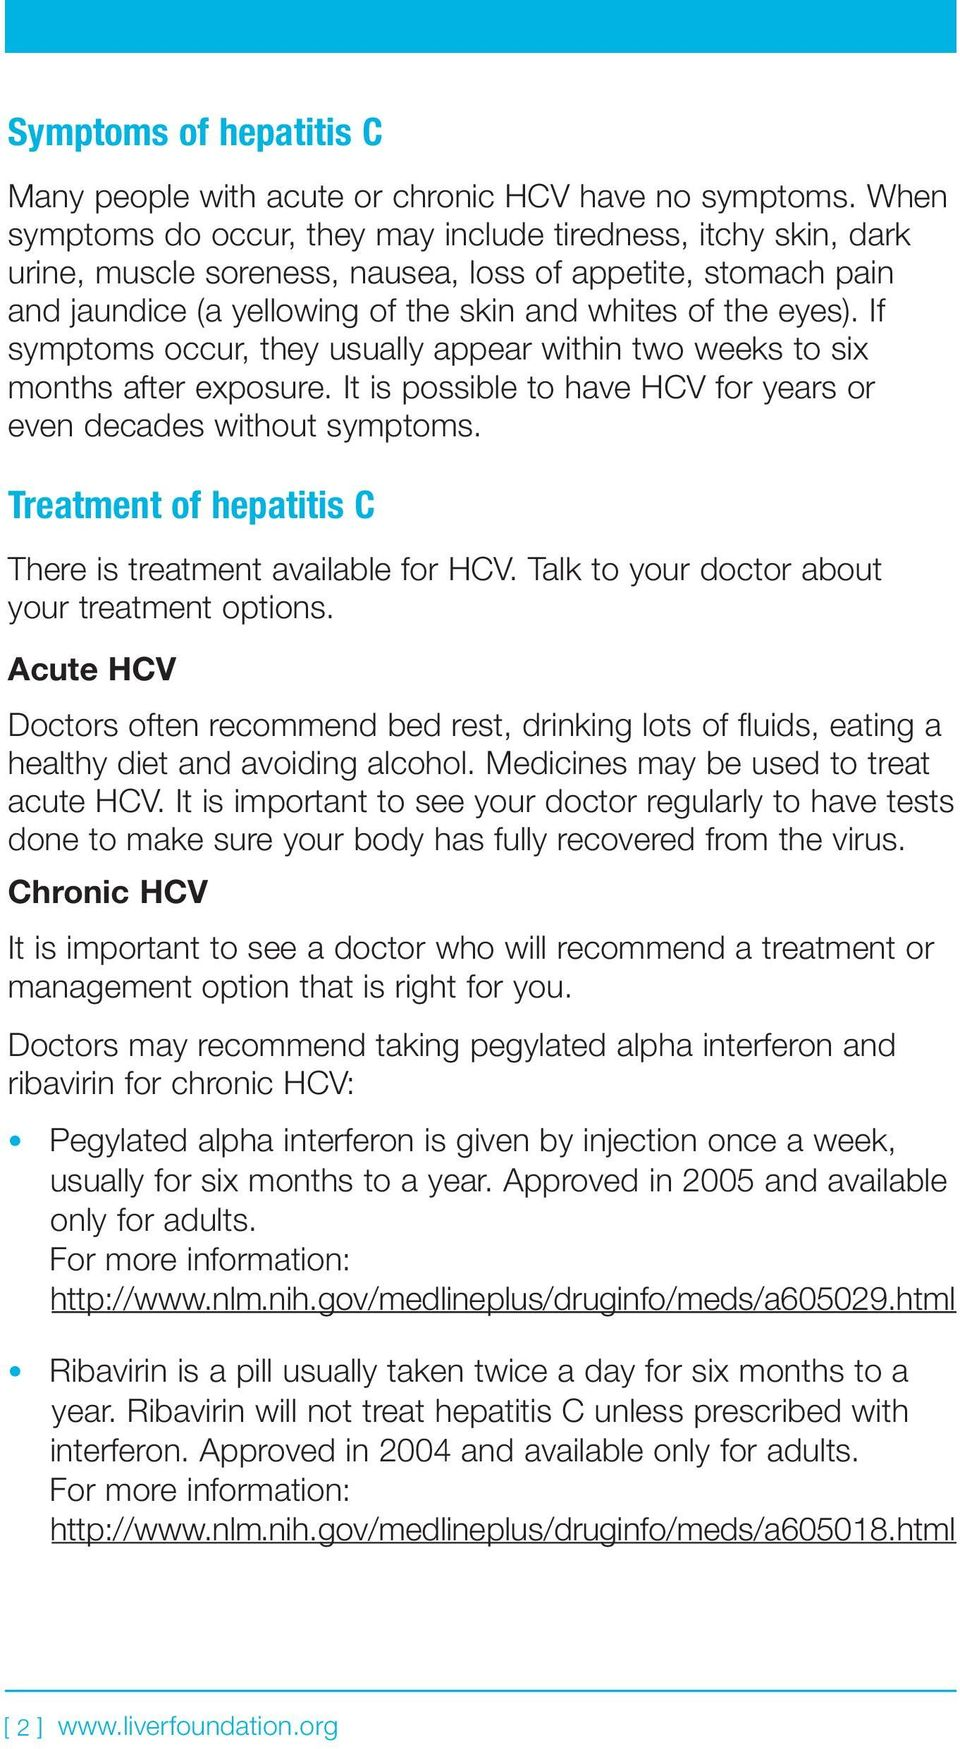 If symptoms occur, they usually appear within two weeks to six months after exposure. It is possible to have HCV for years or even decades without symptoms.